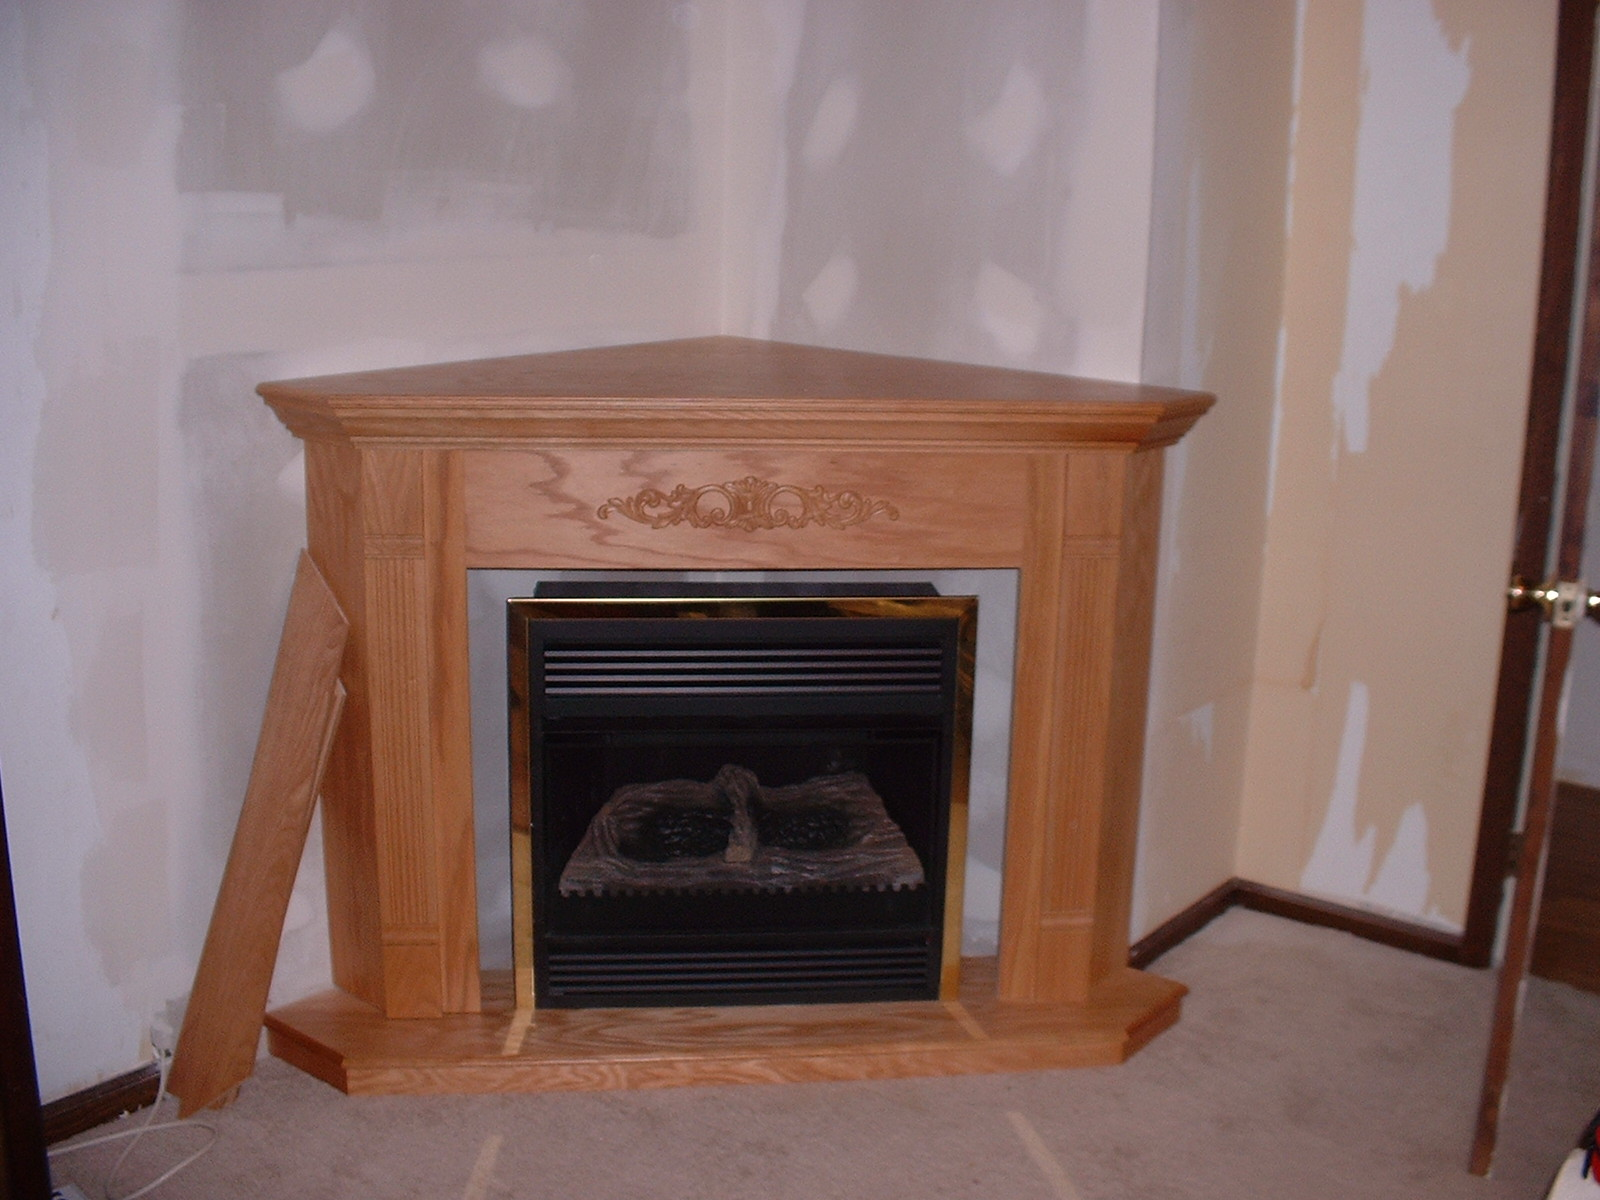 This is a ventless fireplace that we installed in the master bedroom.